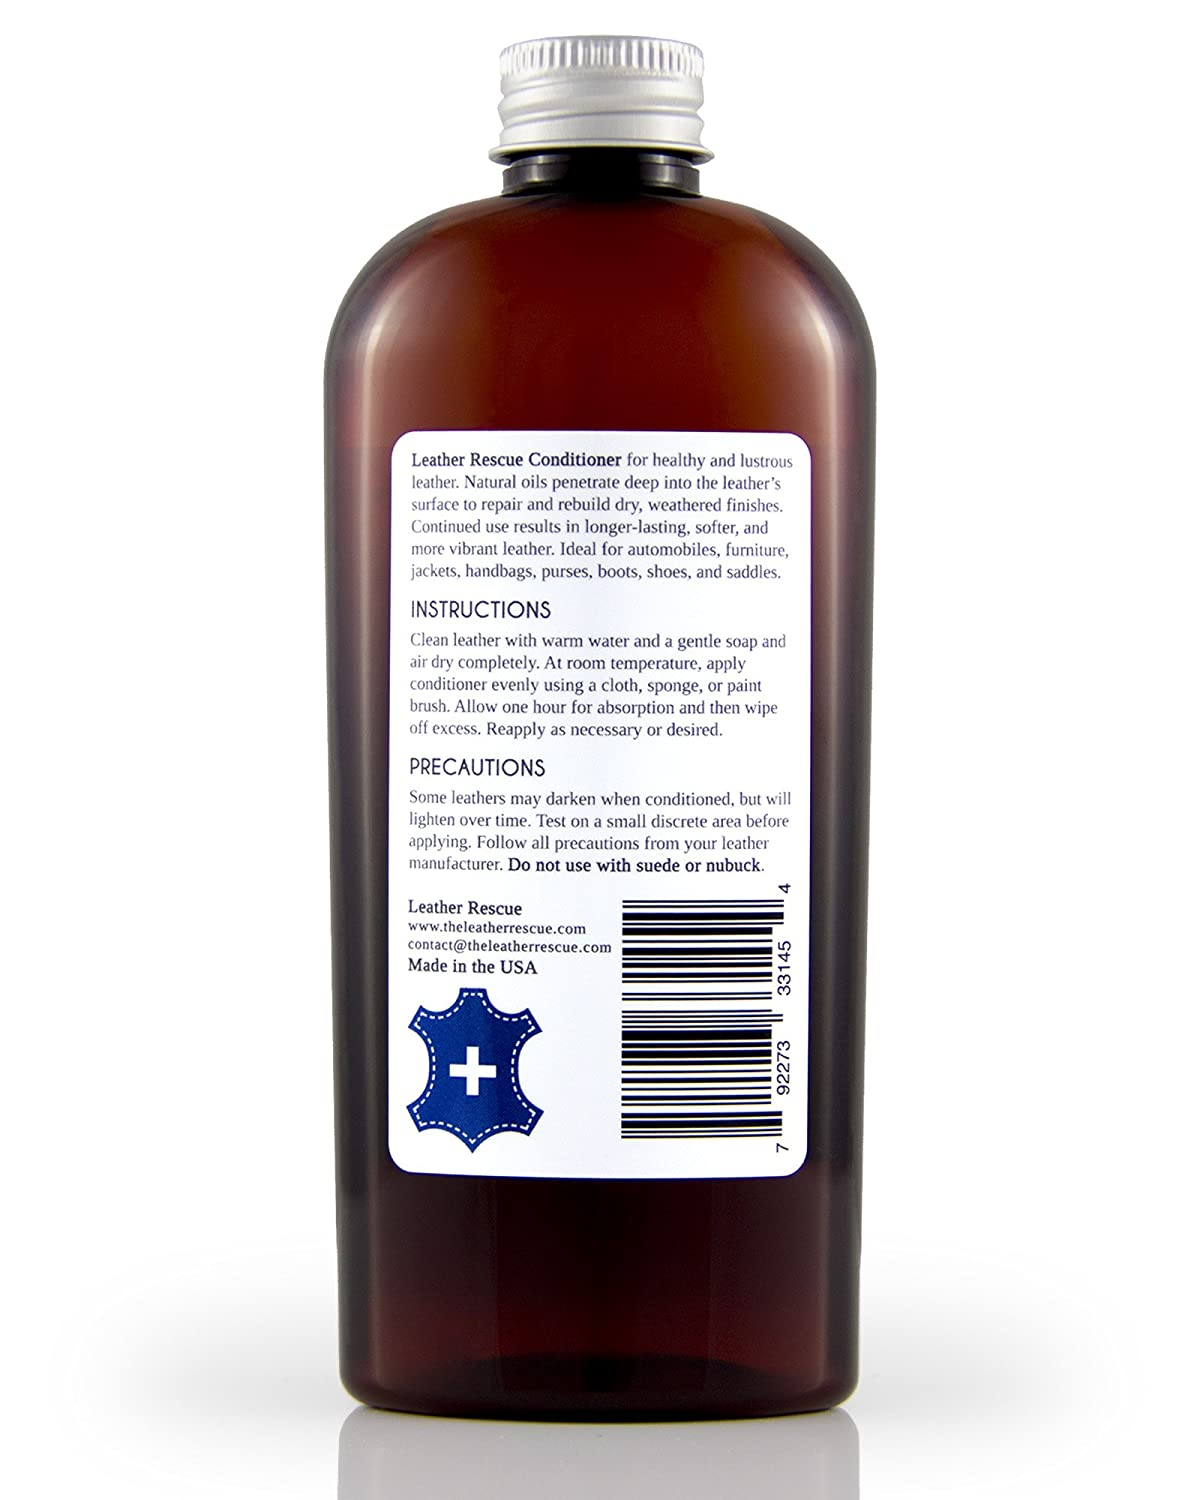 Amazon.com: Leather Rescue Leather Conditioner and Restorer ...